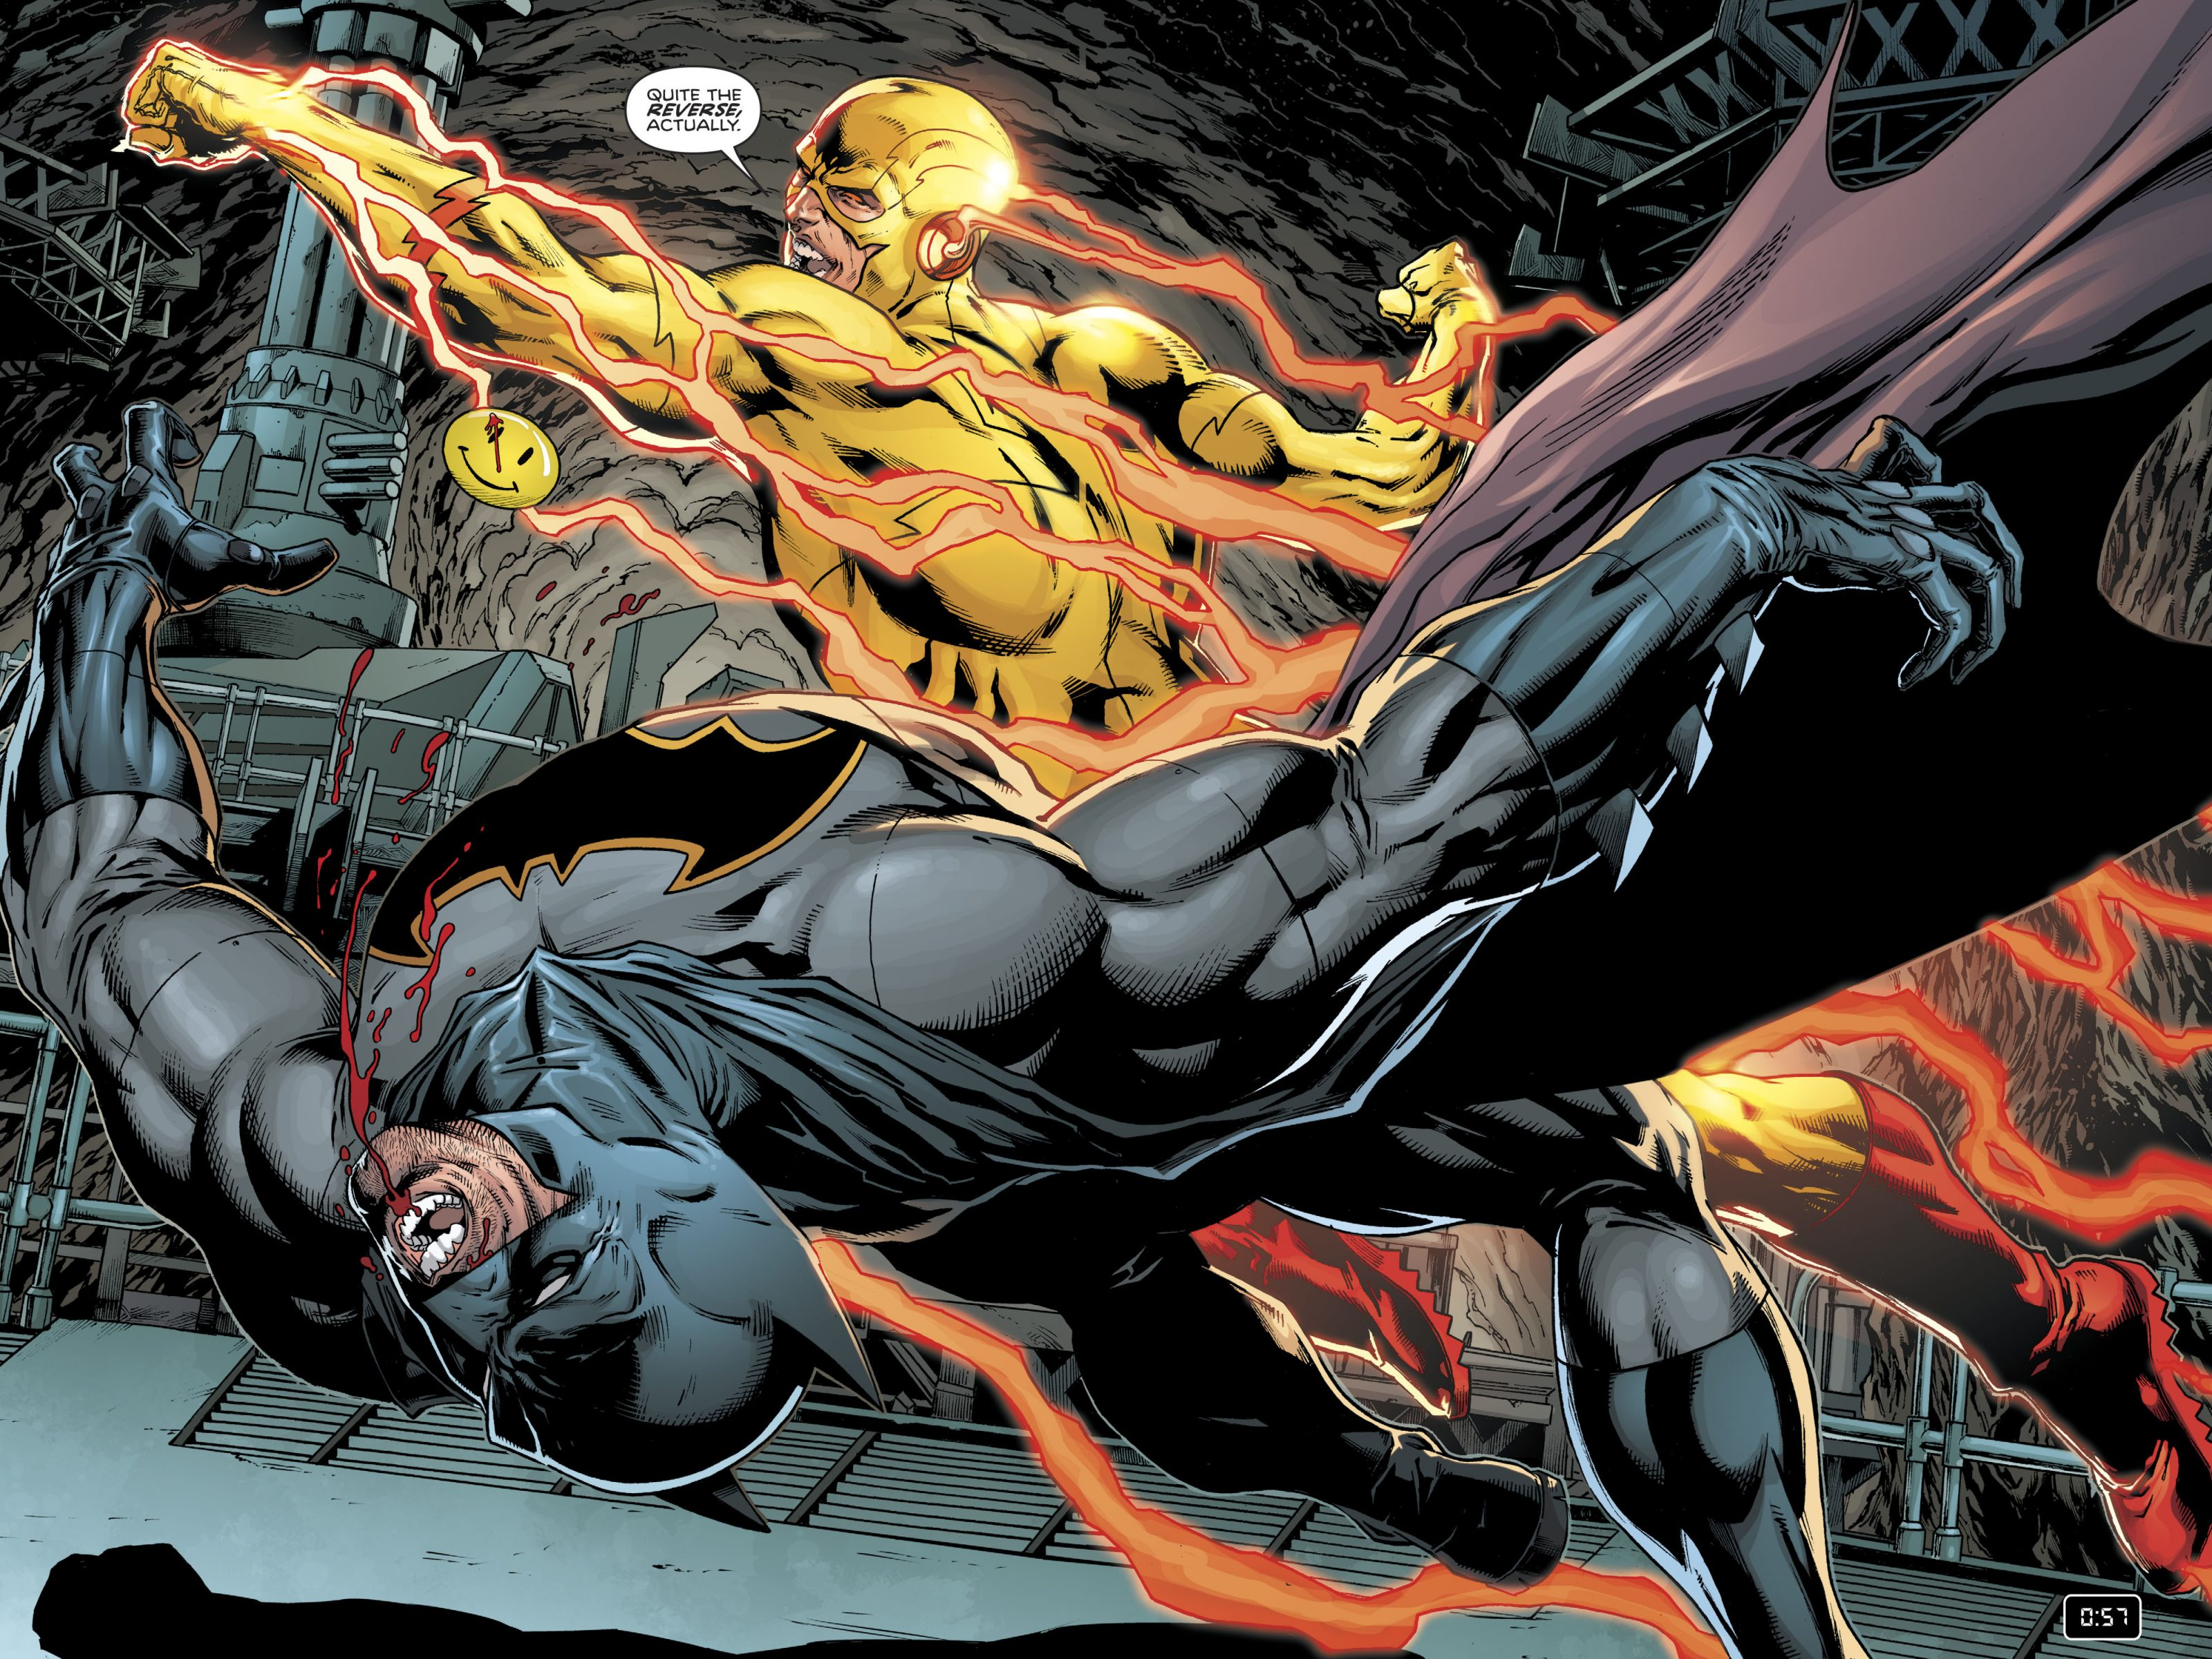 Batman Vs Reverse Flash Dc Comics 4k Uhd Wallpaper